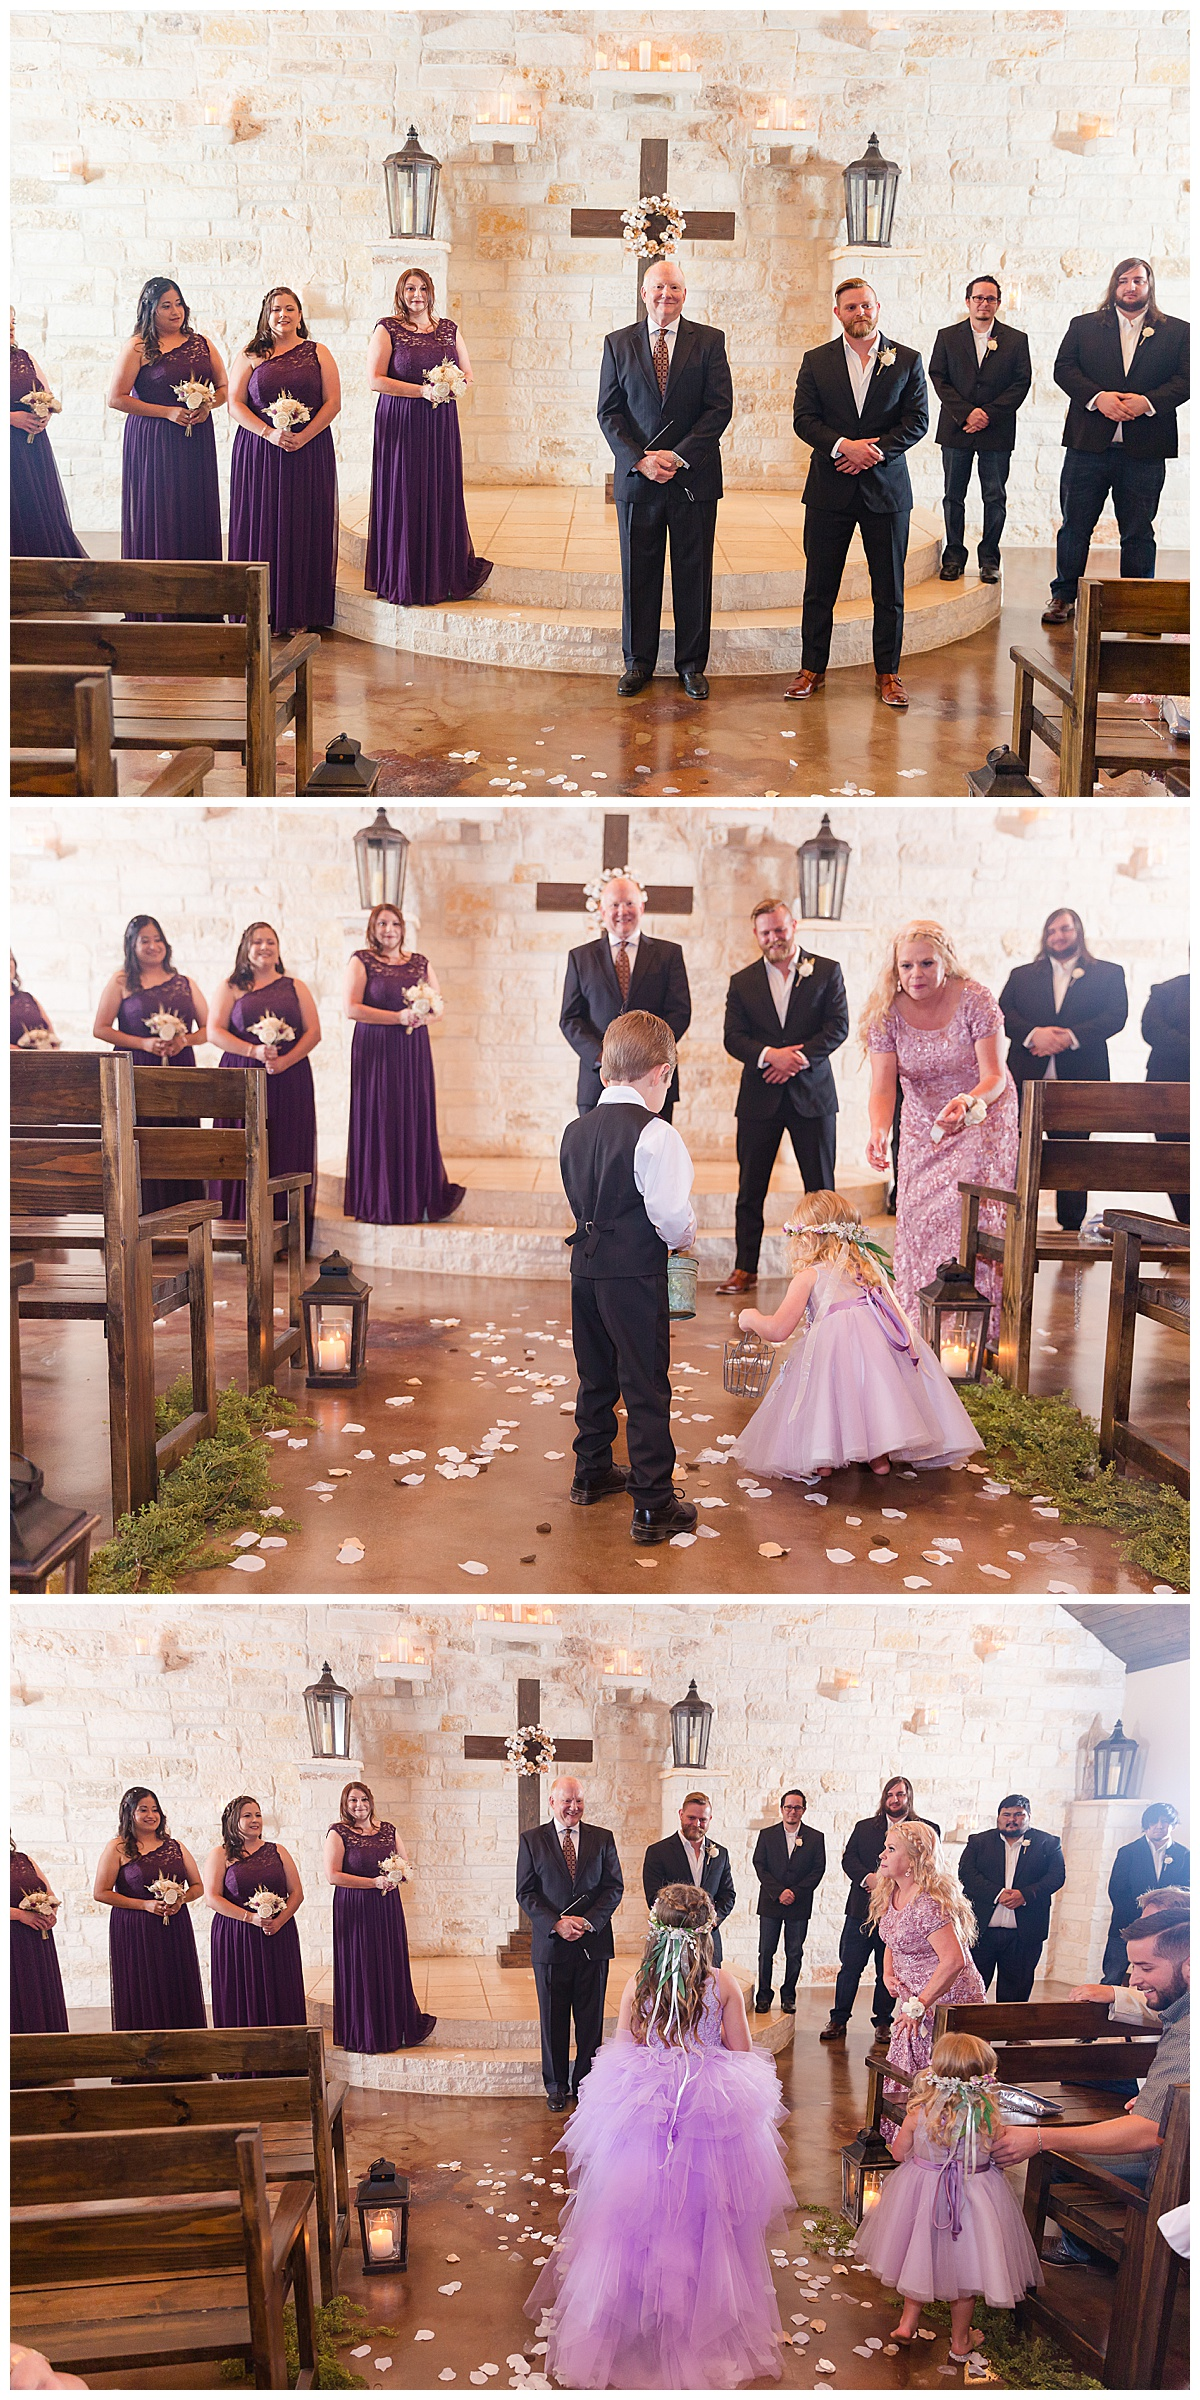 Texas-Magnolia-Bells-Rustic-Wedding-Carly-Barton-Photography_0070.jpg